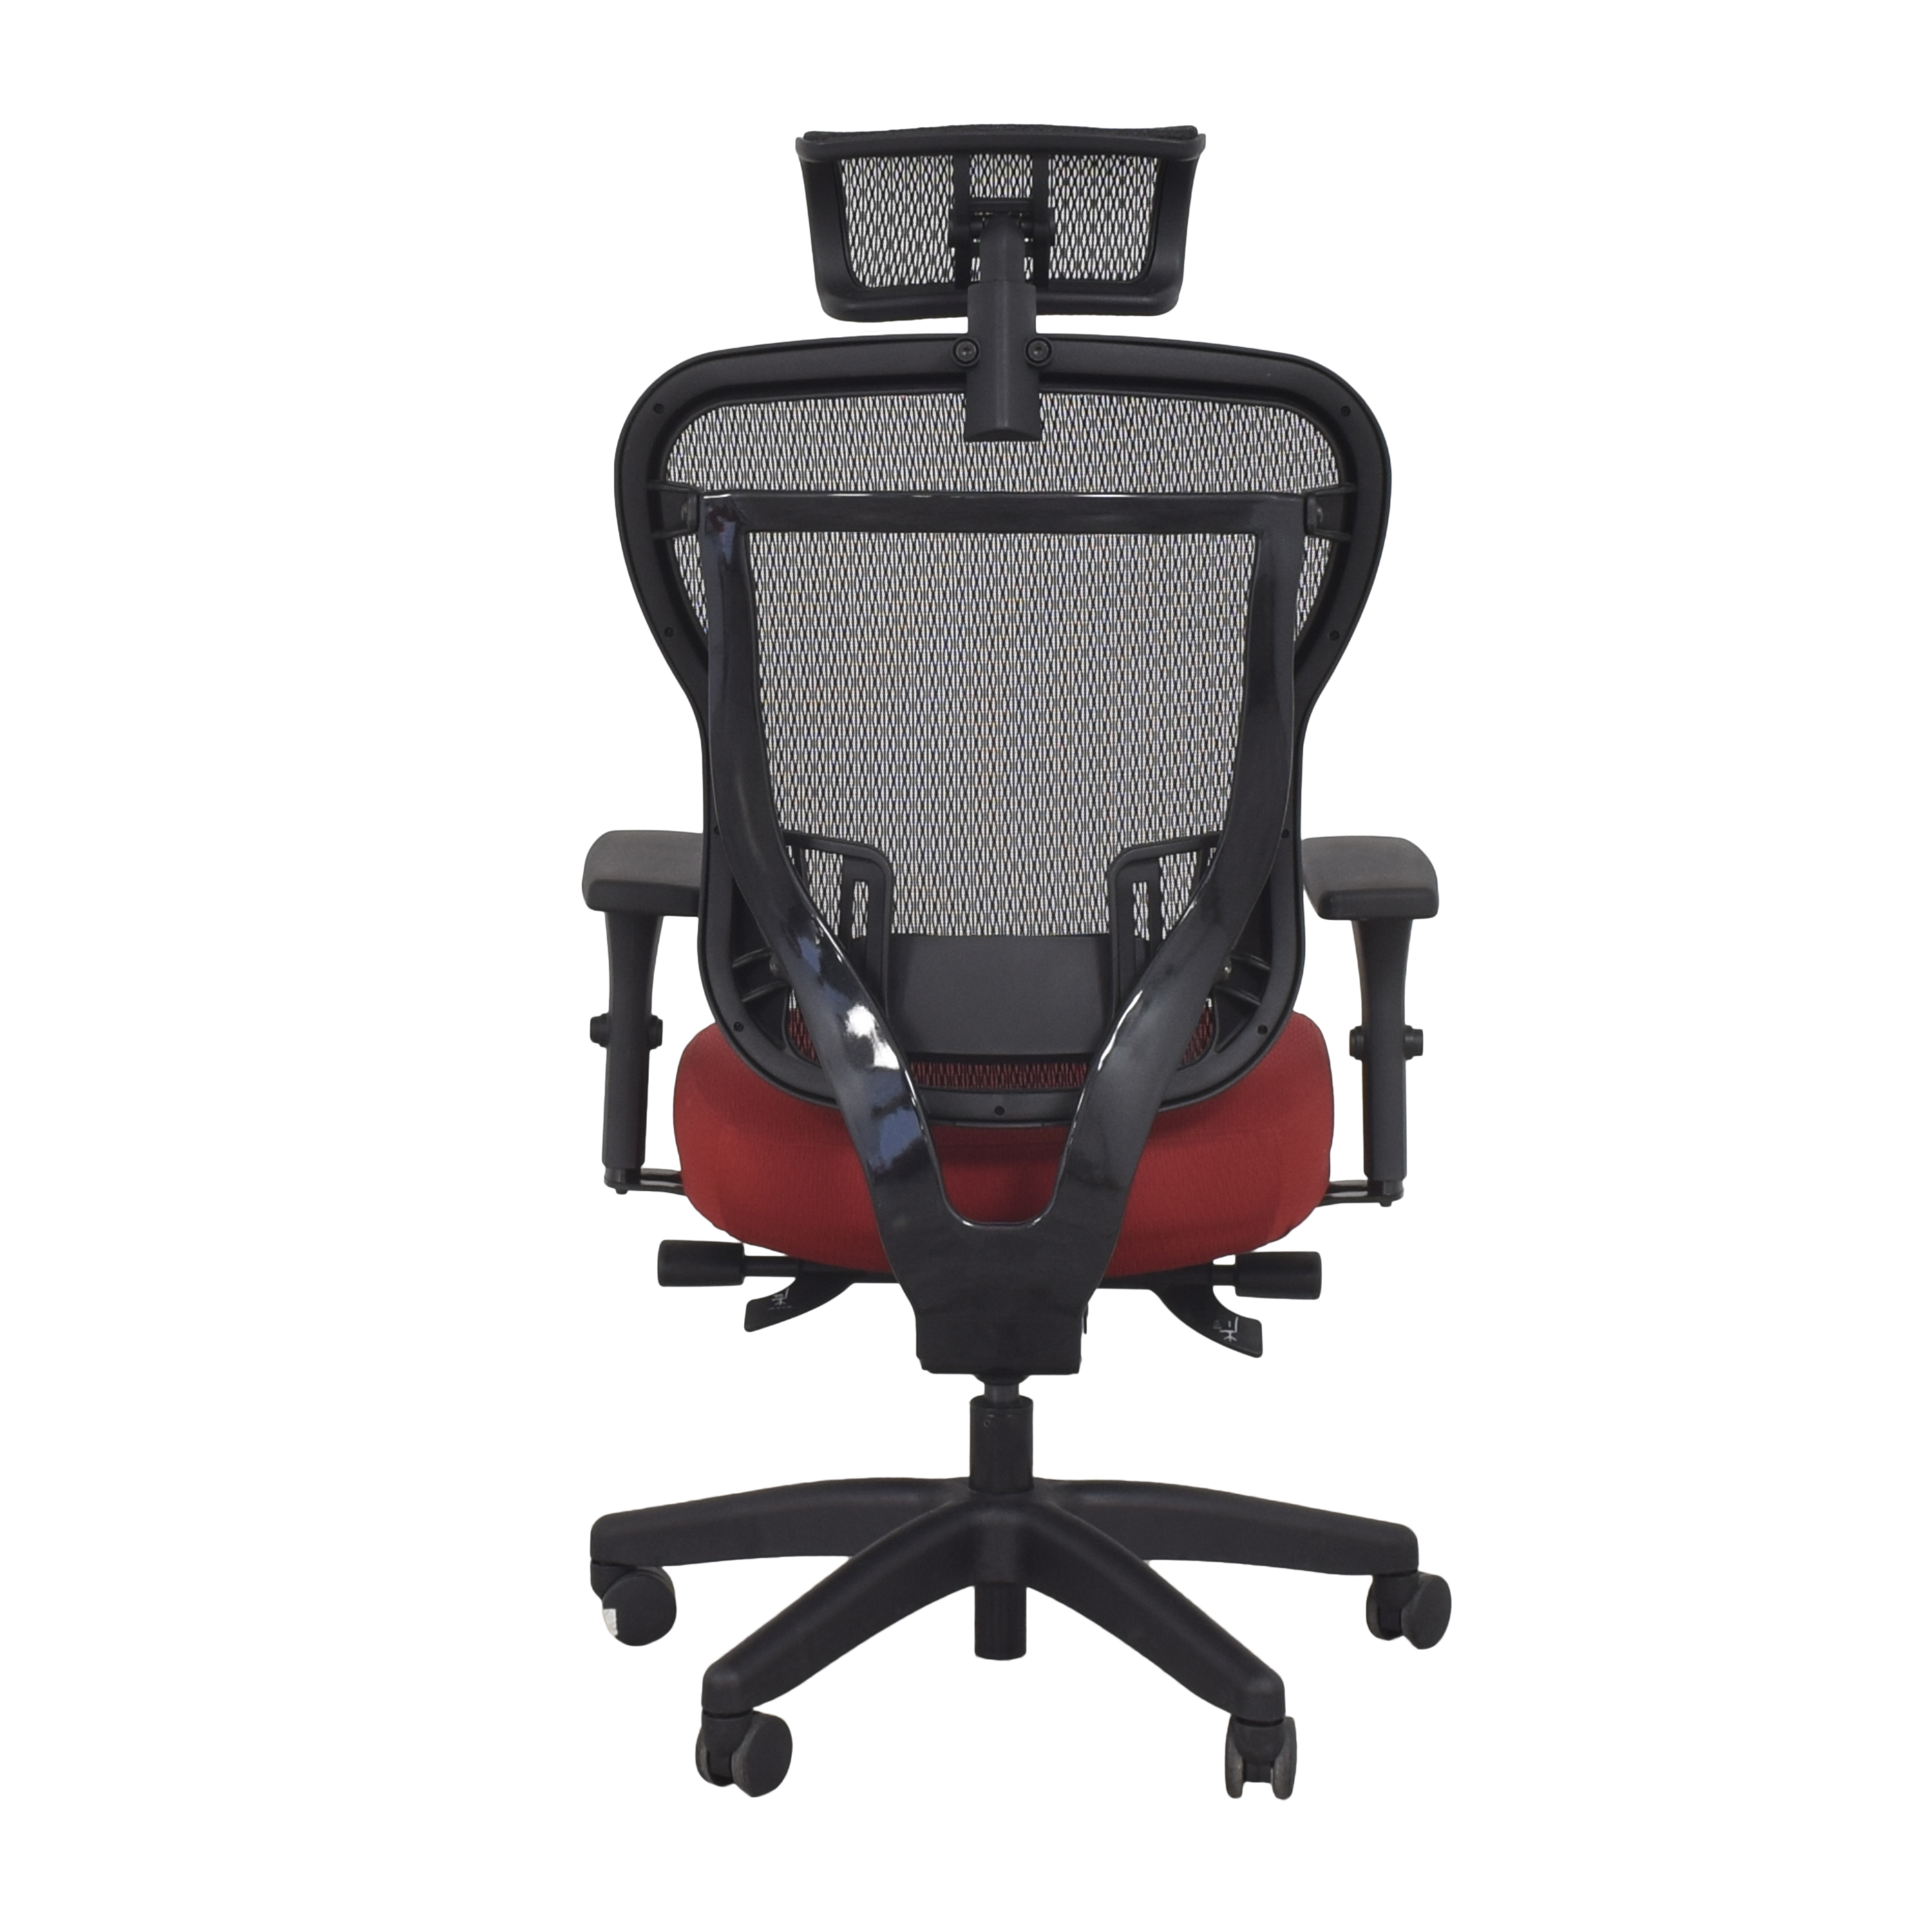 Buzz Seating Buzz Seating Rika Adjustable Task Chair on sale